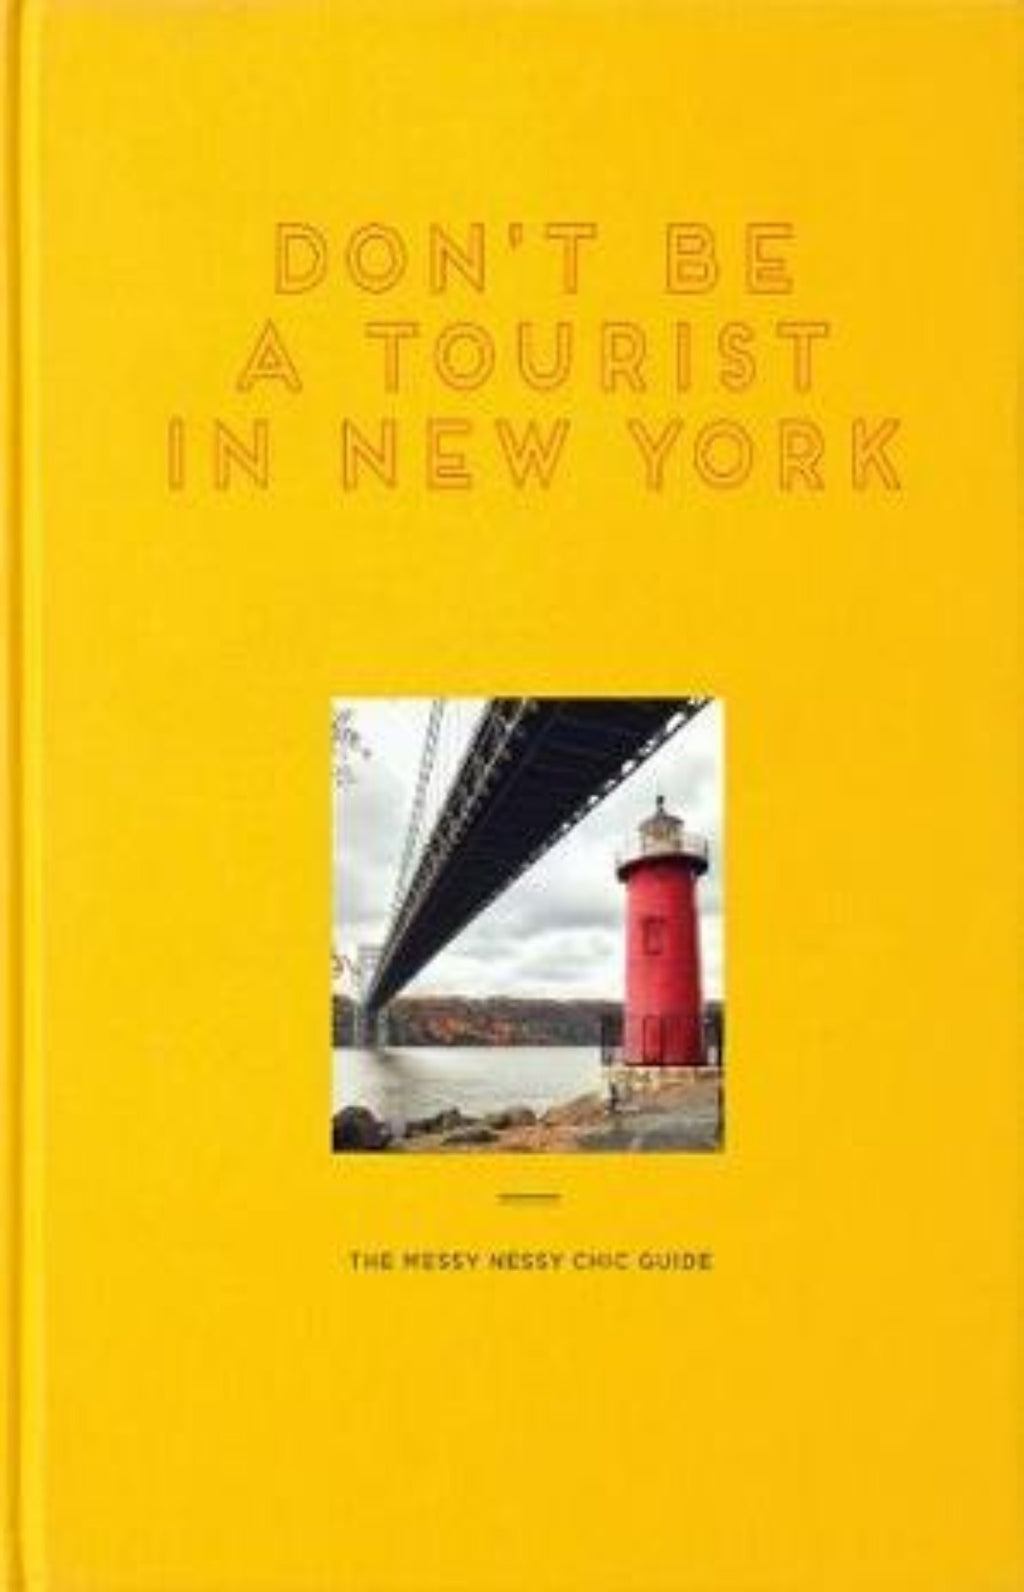 Don't Be a Tourist in New York : The Messy Nessy Chic Guide